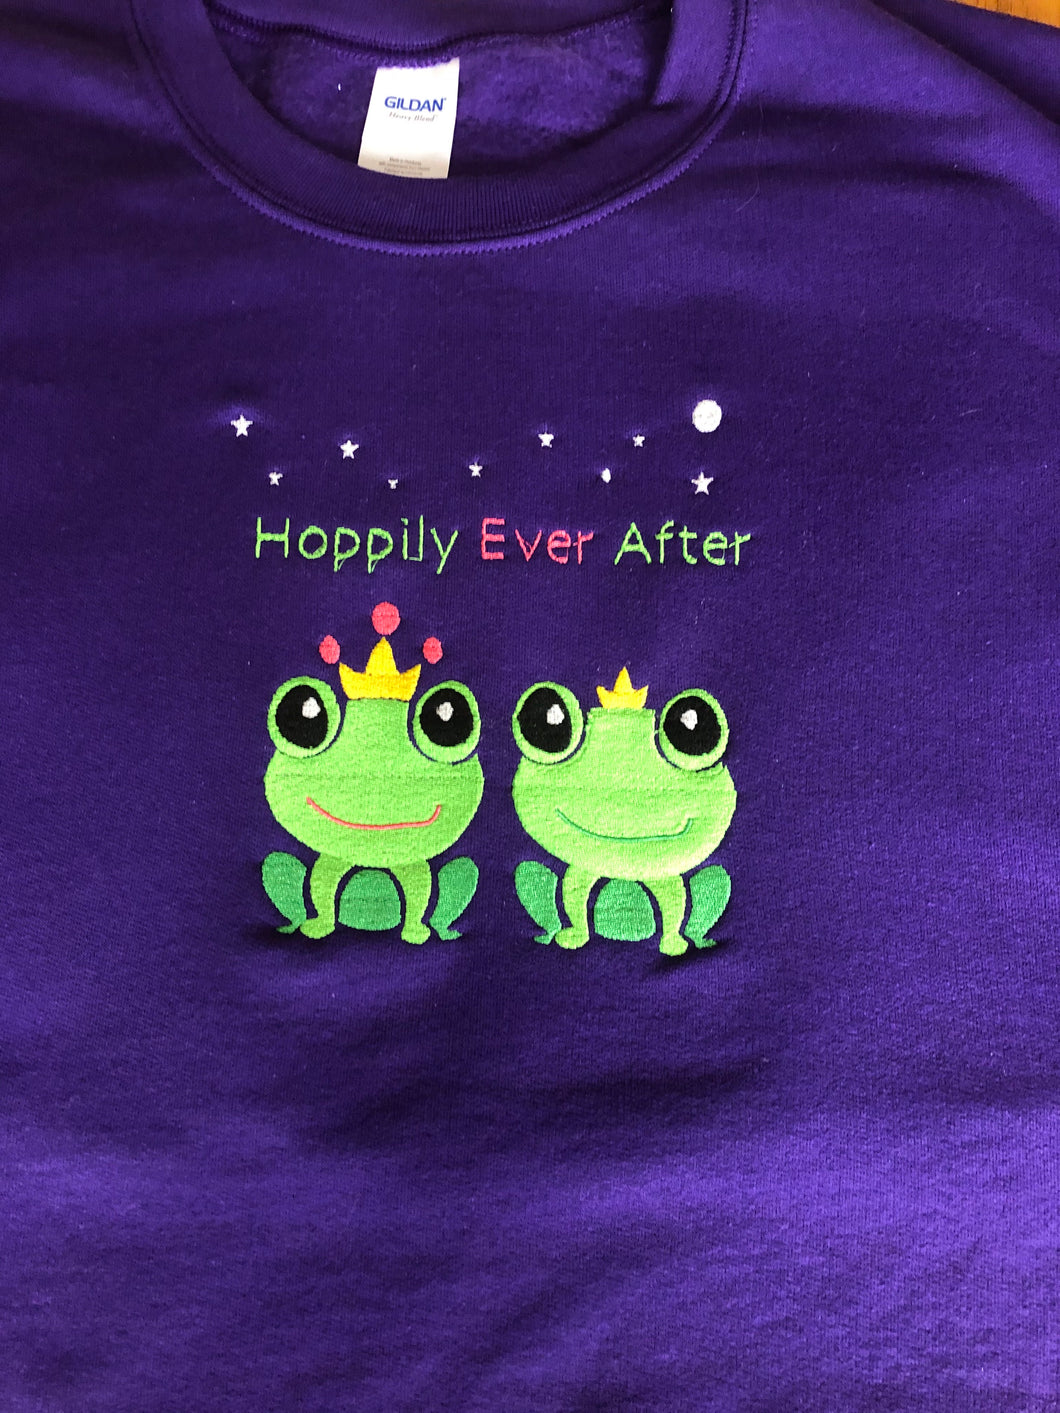 Hoppily Ever After t-shirt